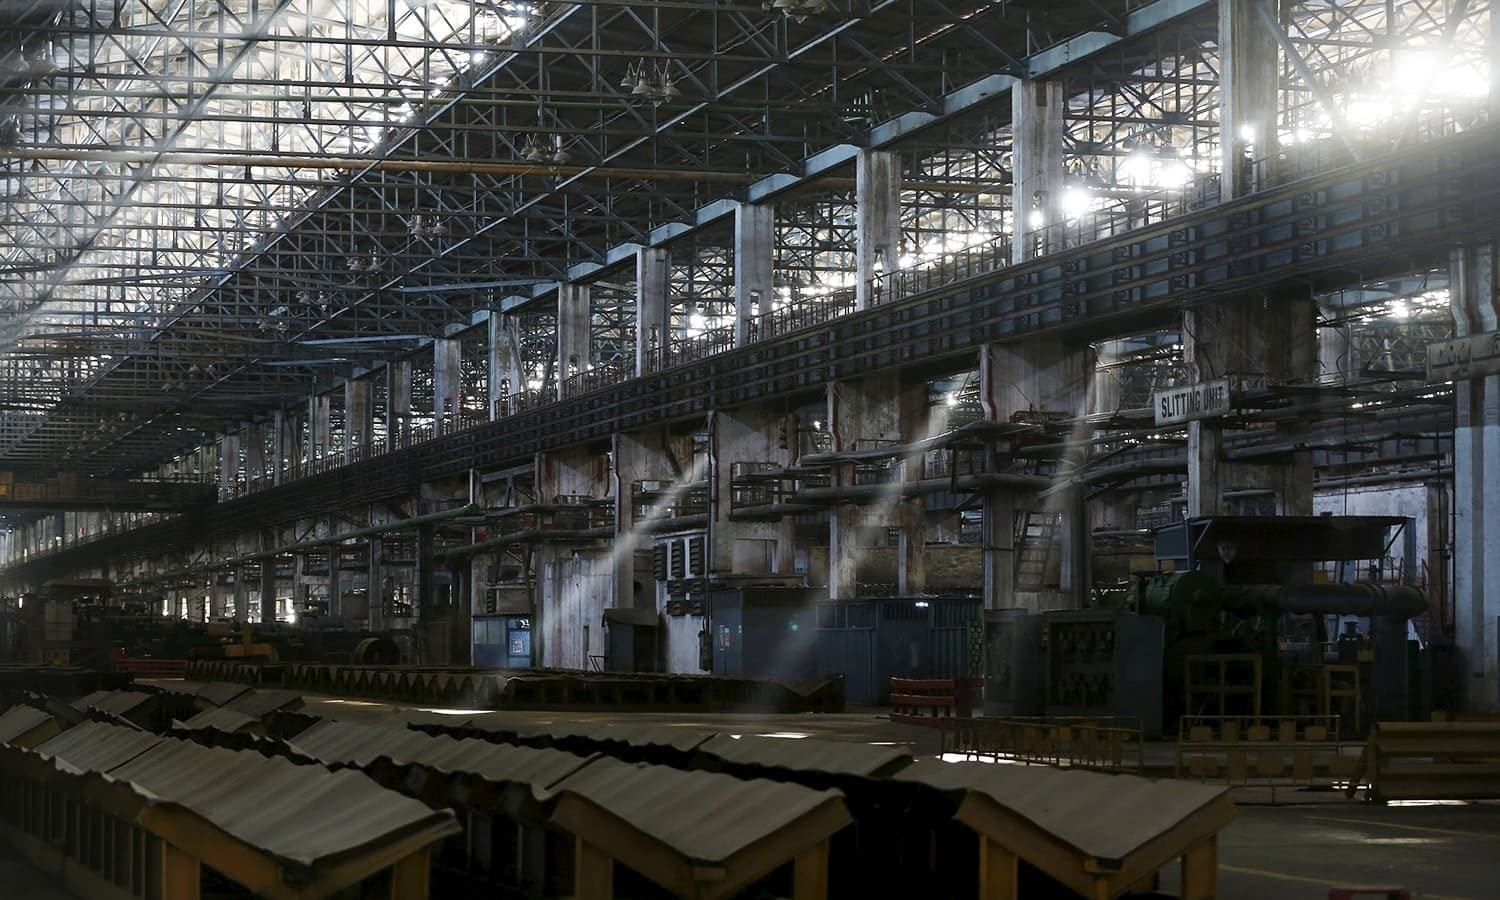 Call for probe into 'deliberate destruction' of Steel Mills